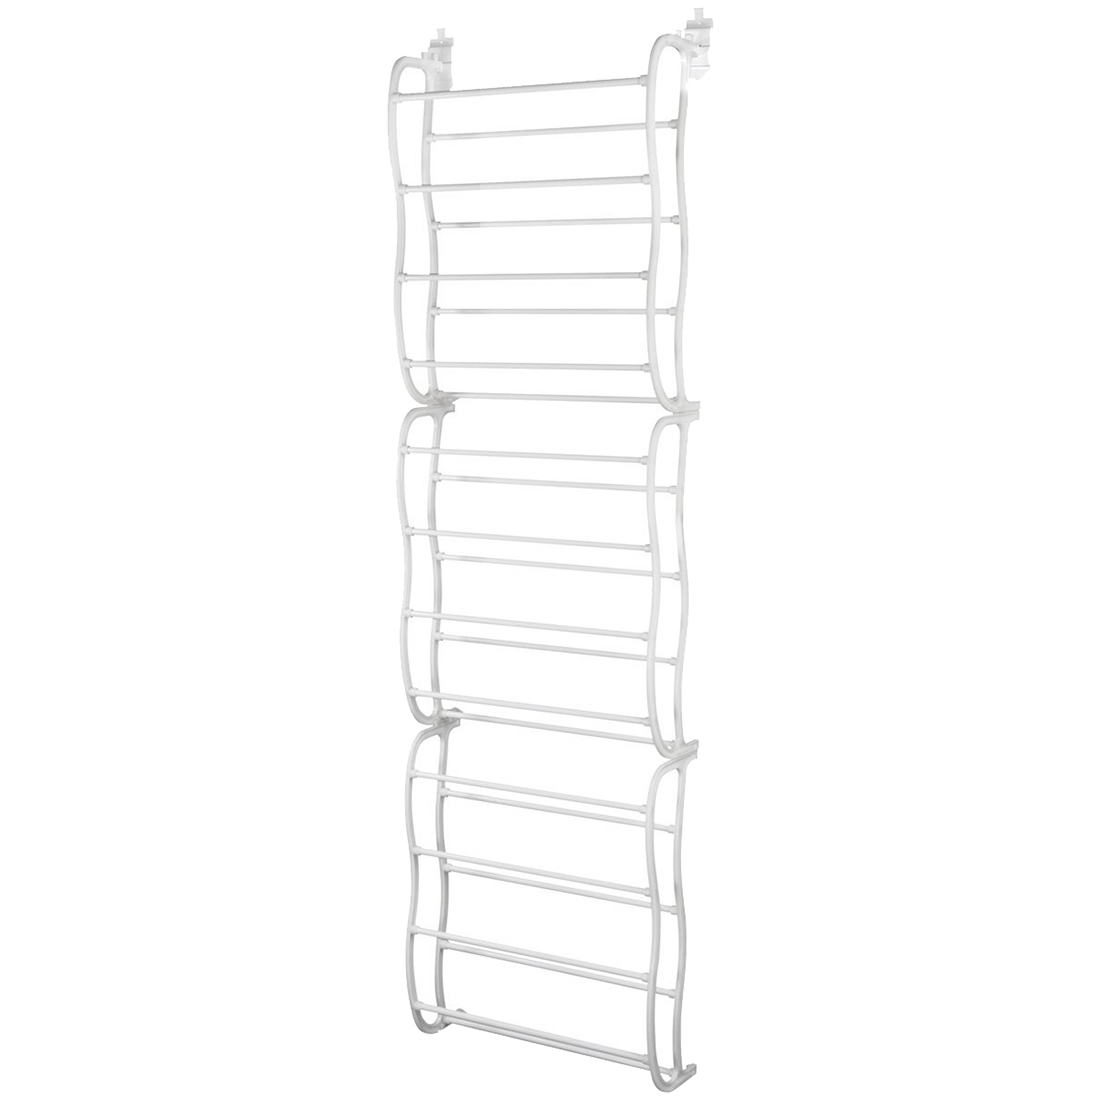 New 36 Pair 12 Layers Over the Door Shoe Rack,Washable Polyester Shoe Rack, Hanging Shoe Storage Bag